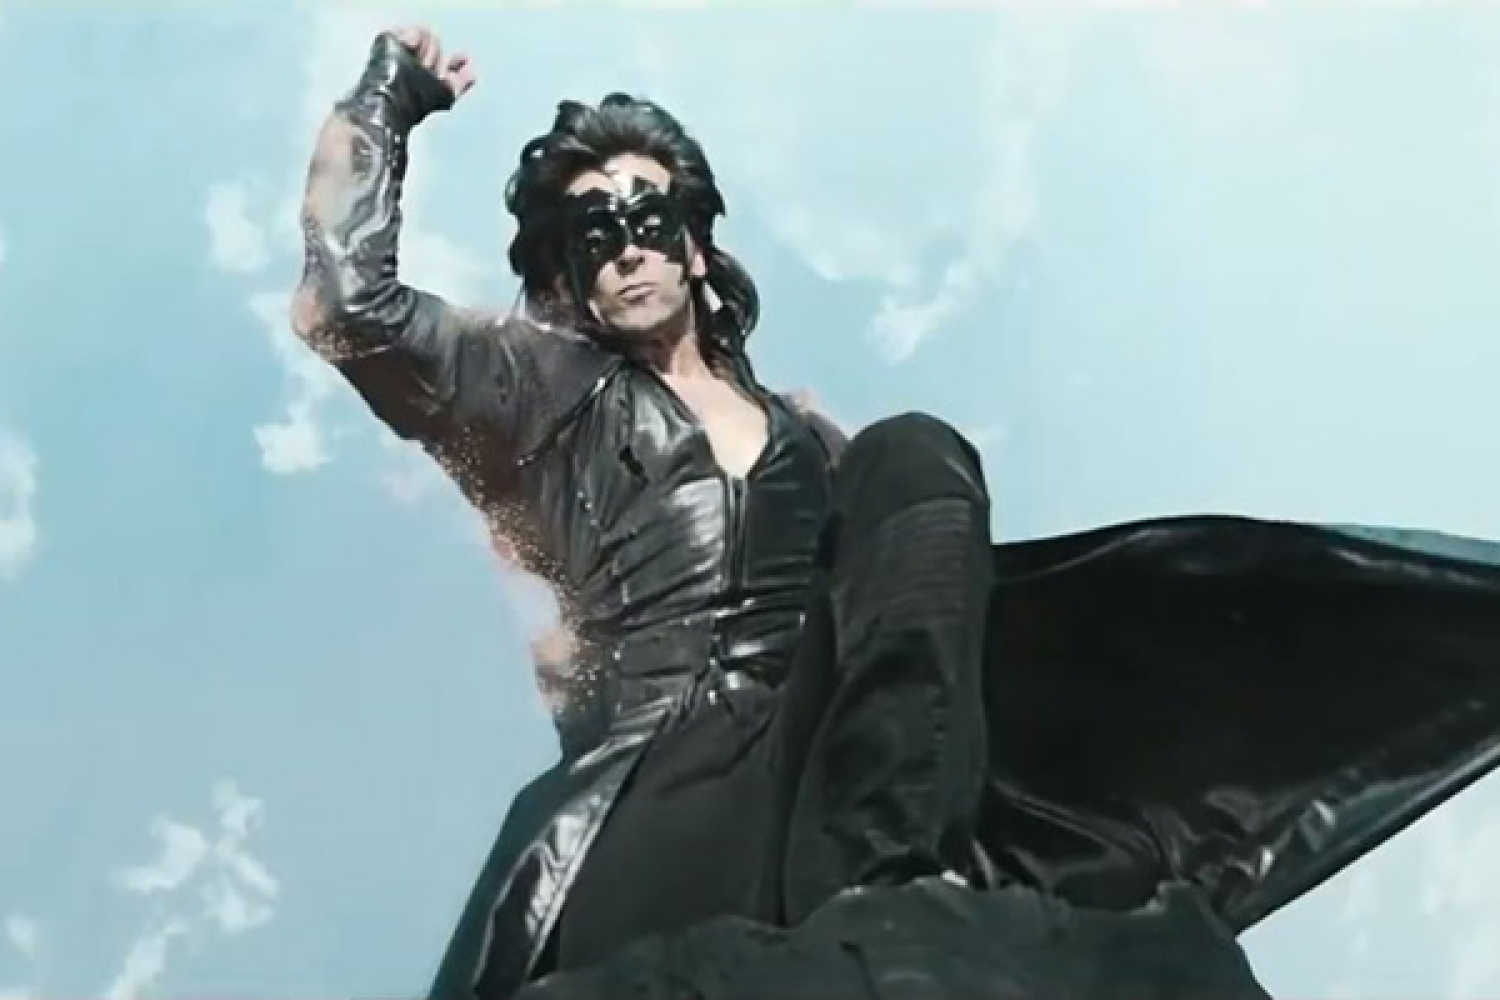 with blessings from bappa, hrithik to don superhero cape for krrish 4